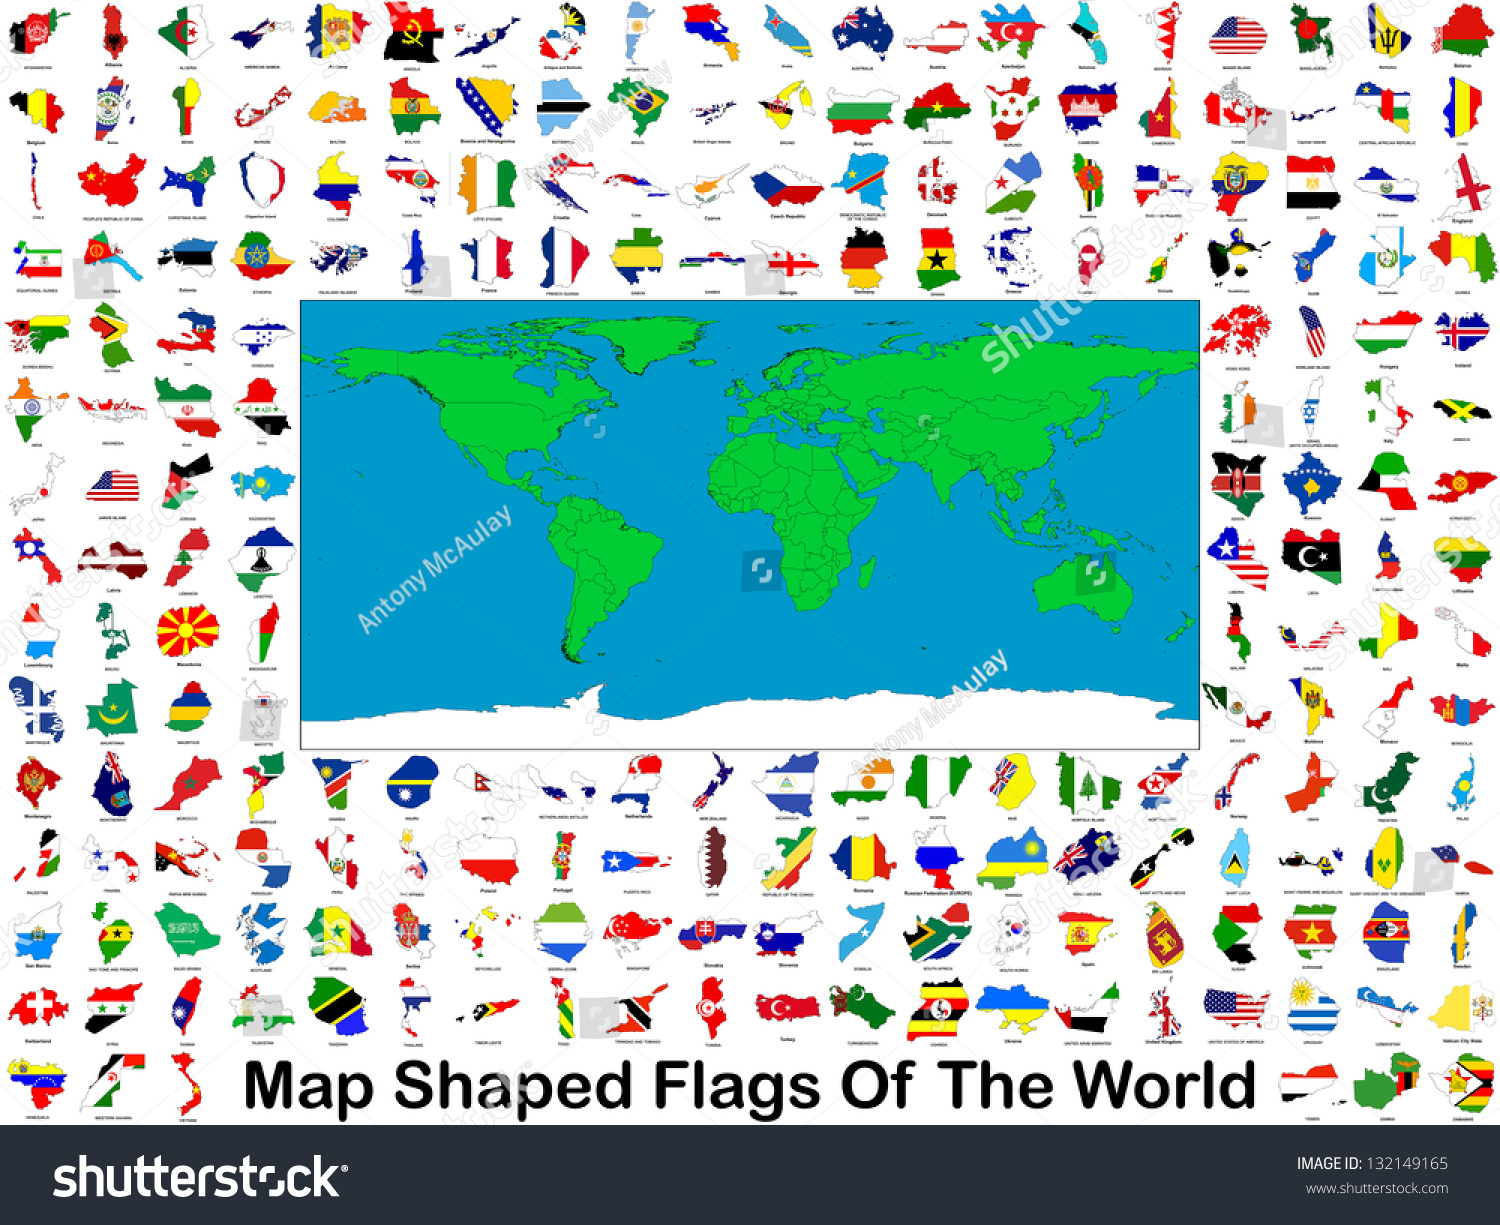 all worlds flags shape their respective stock illustration 132149165